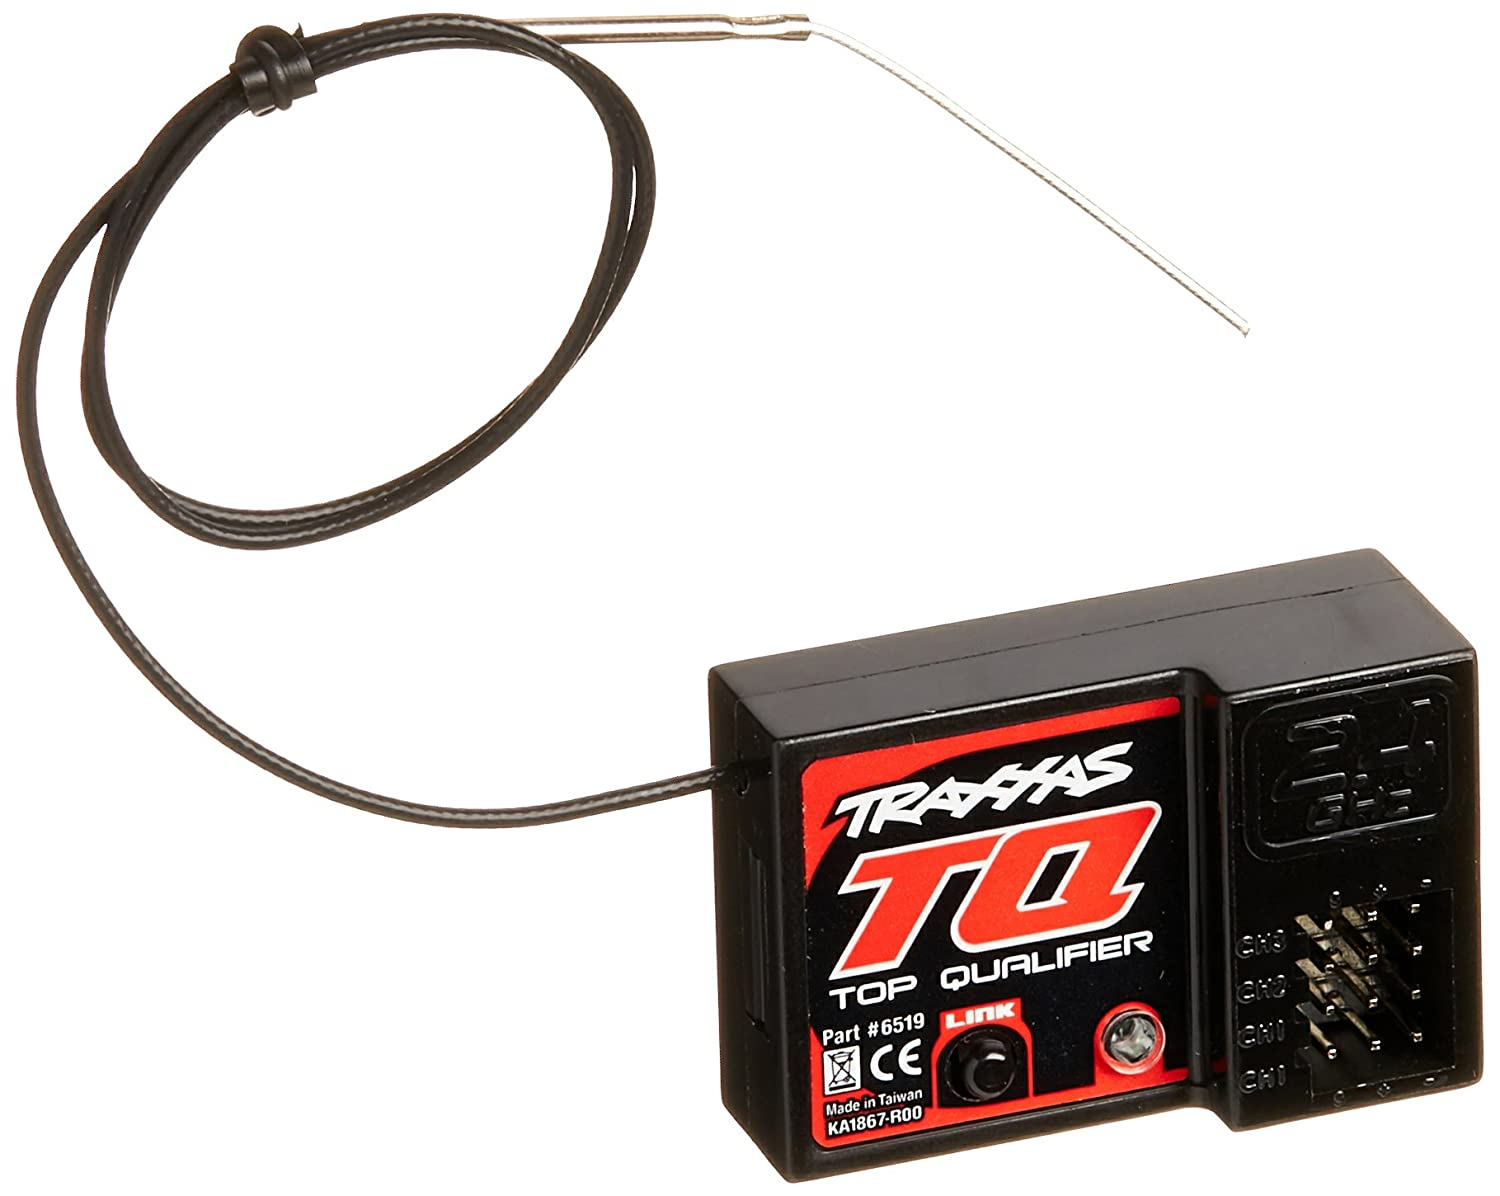 71TtCioizVL._SL1500_ amazon com traxxas 6519 tq 2 4 ghz micro receiver (3ch) toys & games traxxas tq receiver wiring diagram at couponss.co